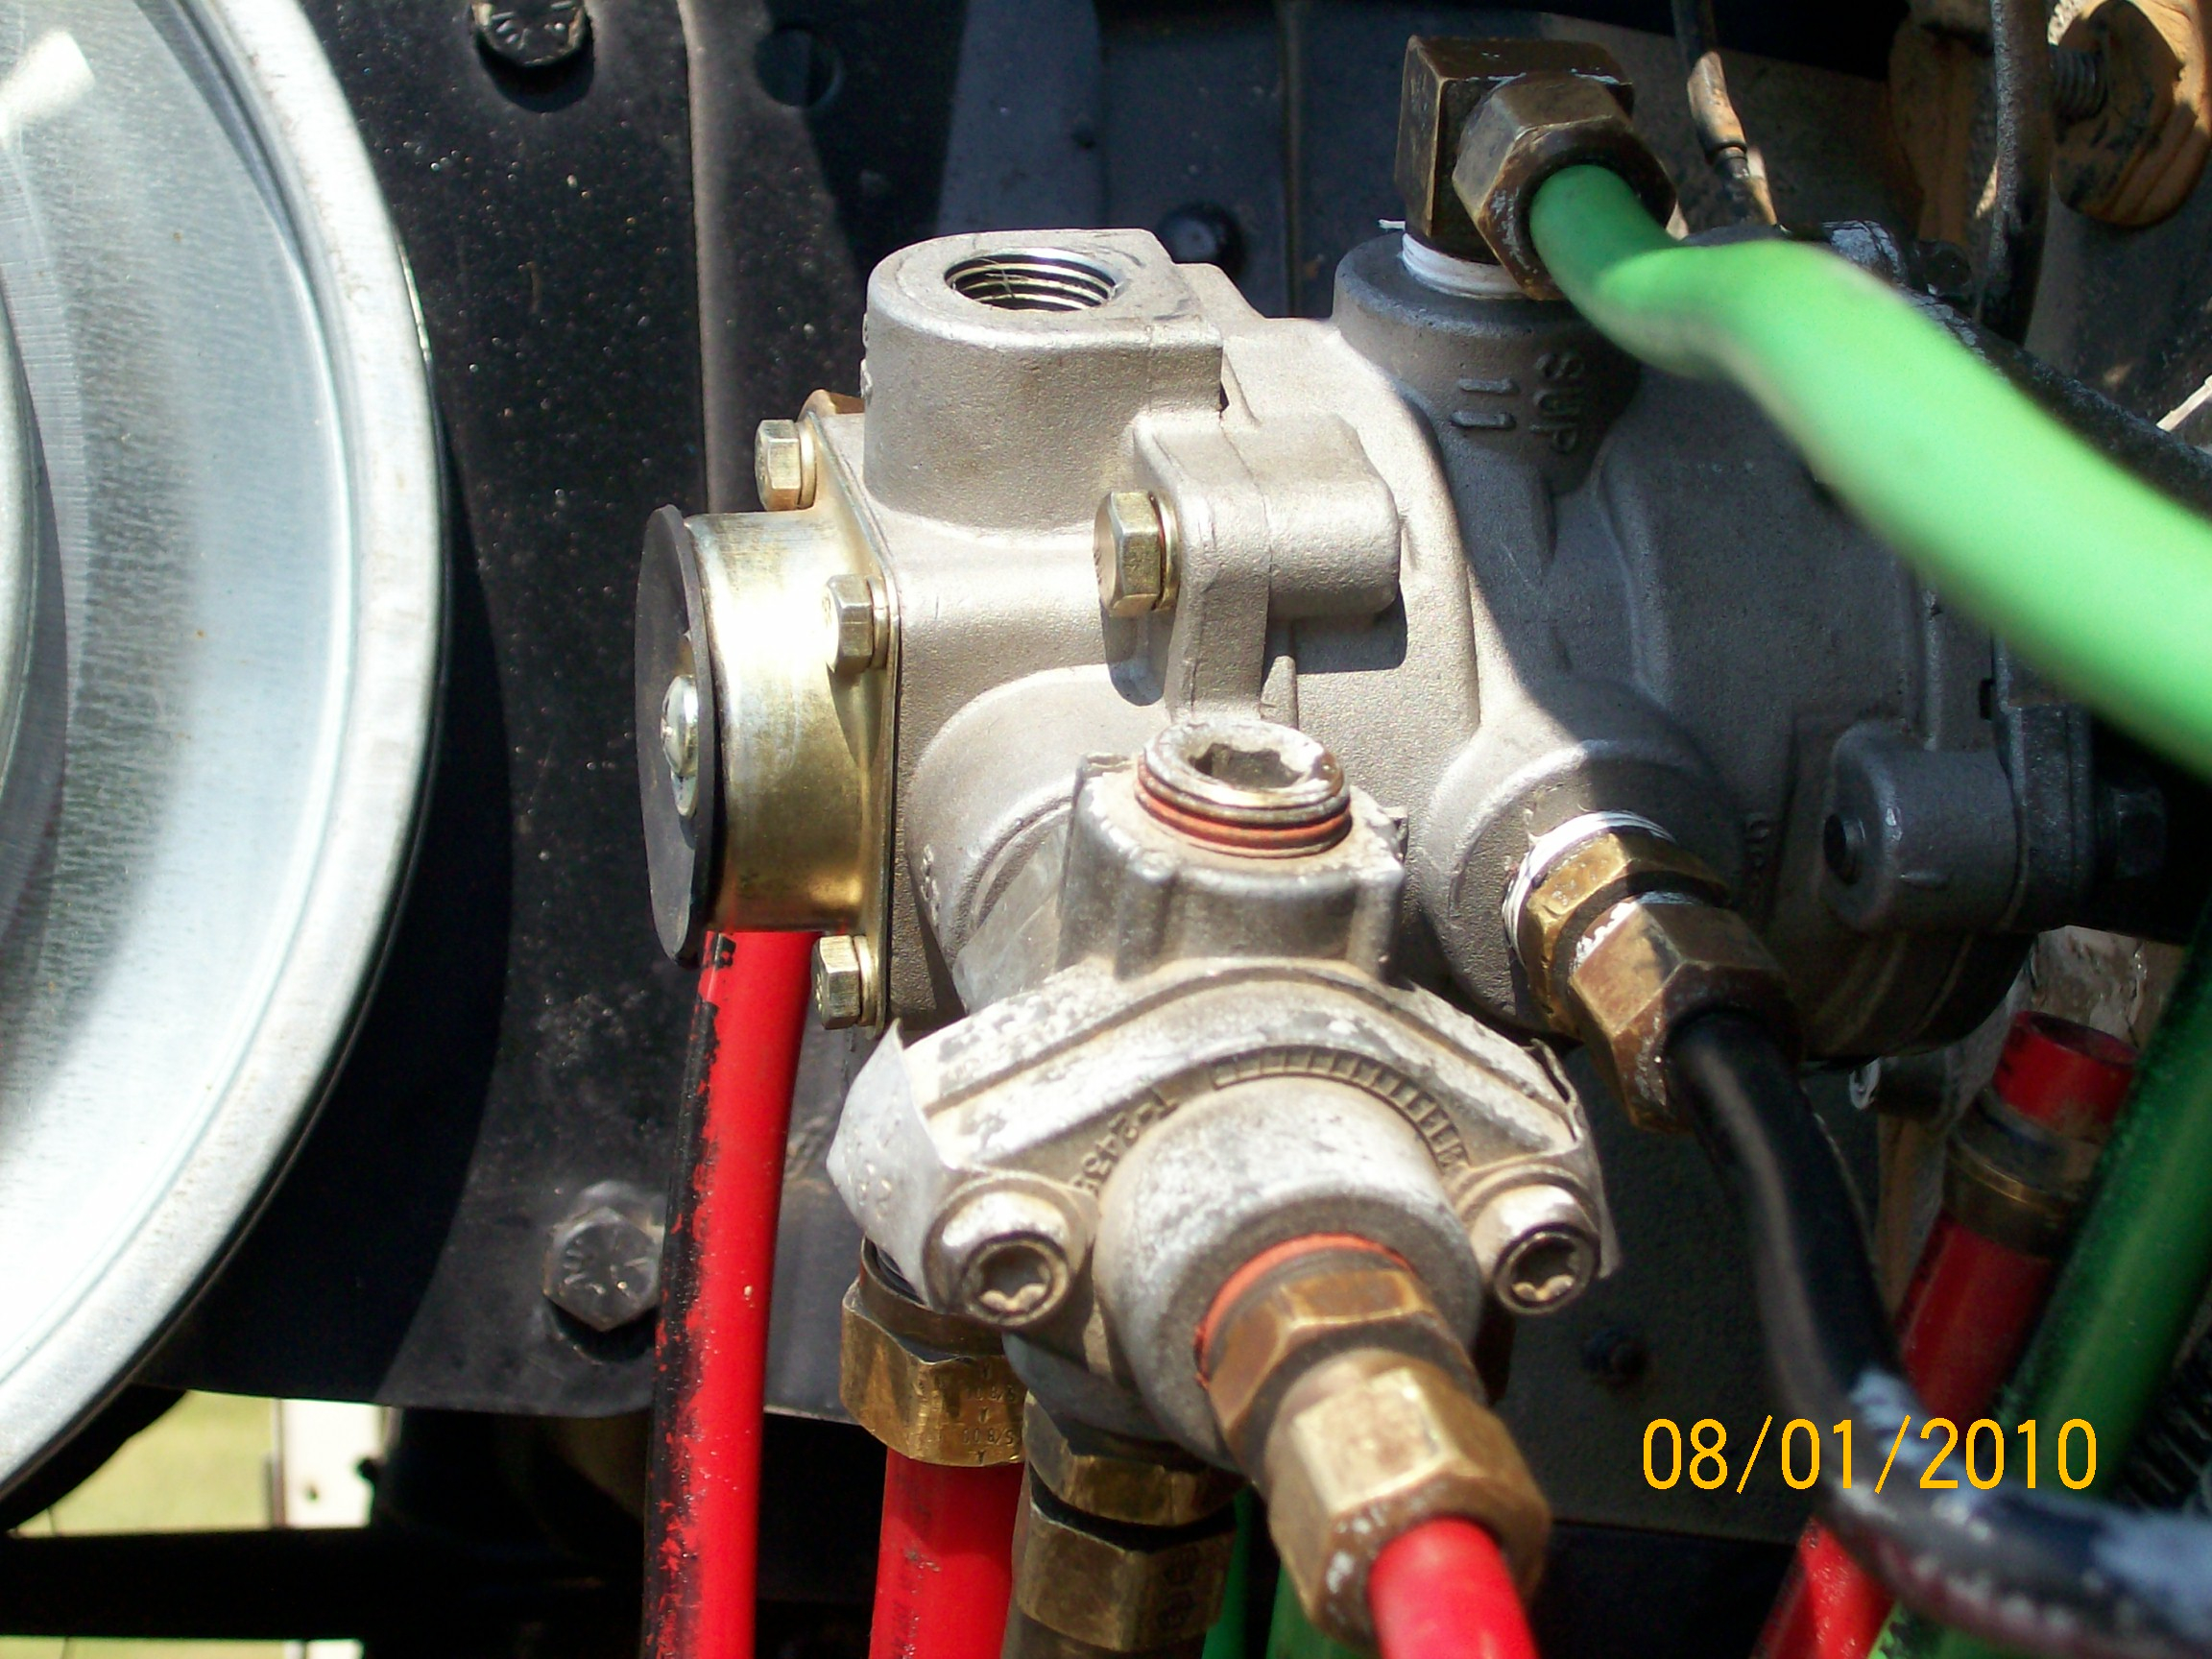 Air Brake Foot Valve Diagram I Have Replaced The Foot Valve 95 Freightliner Fld 120 The Primary